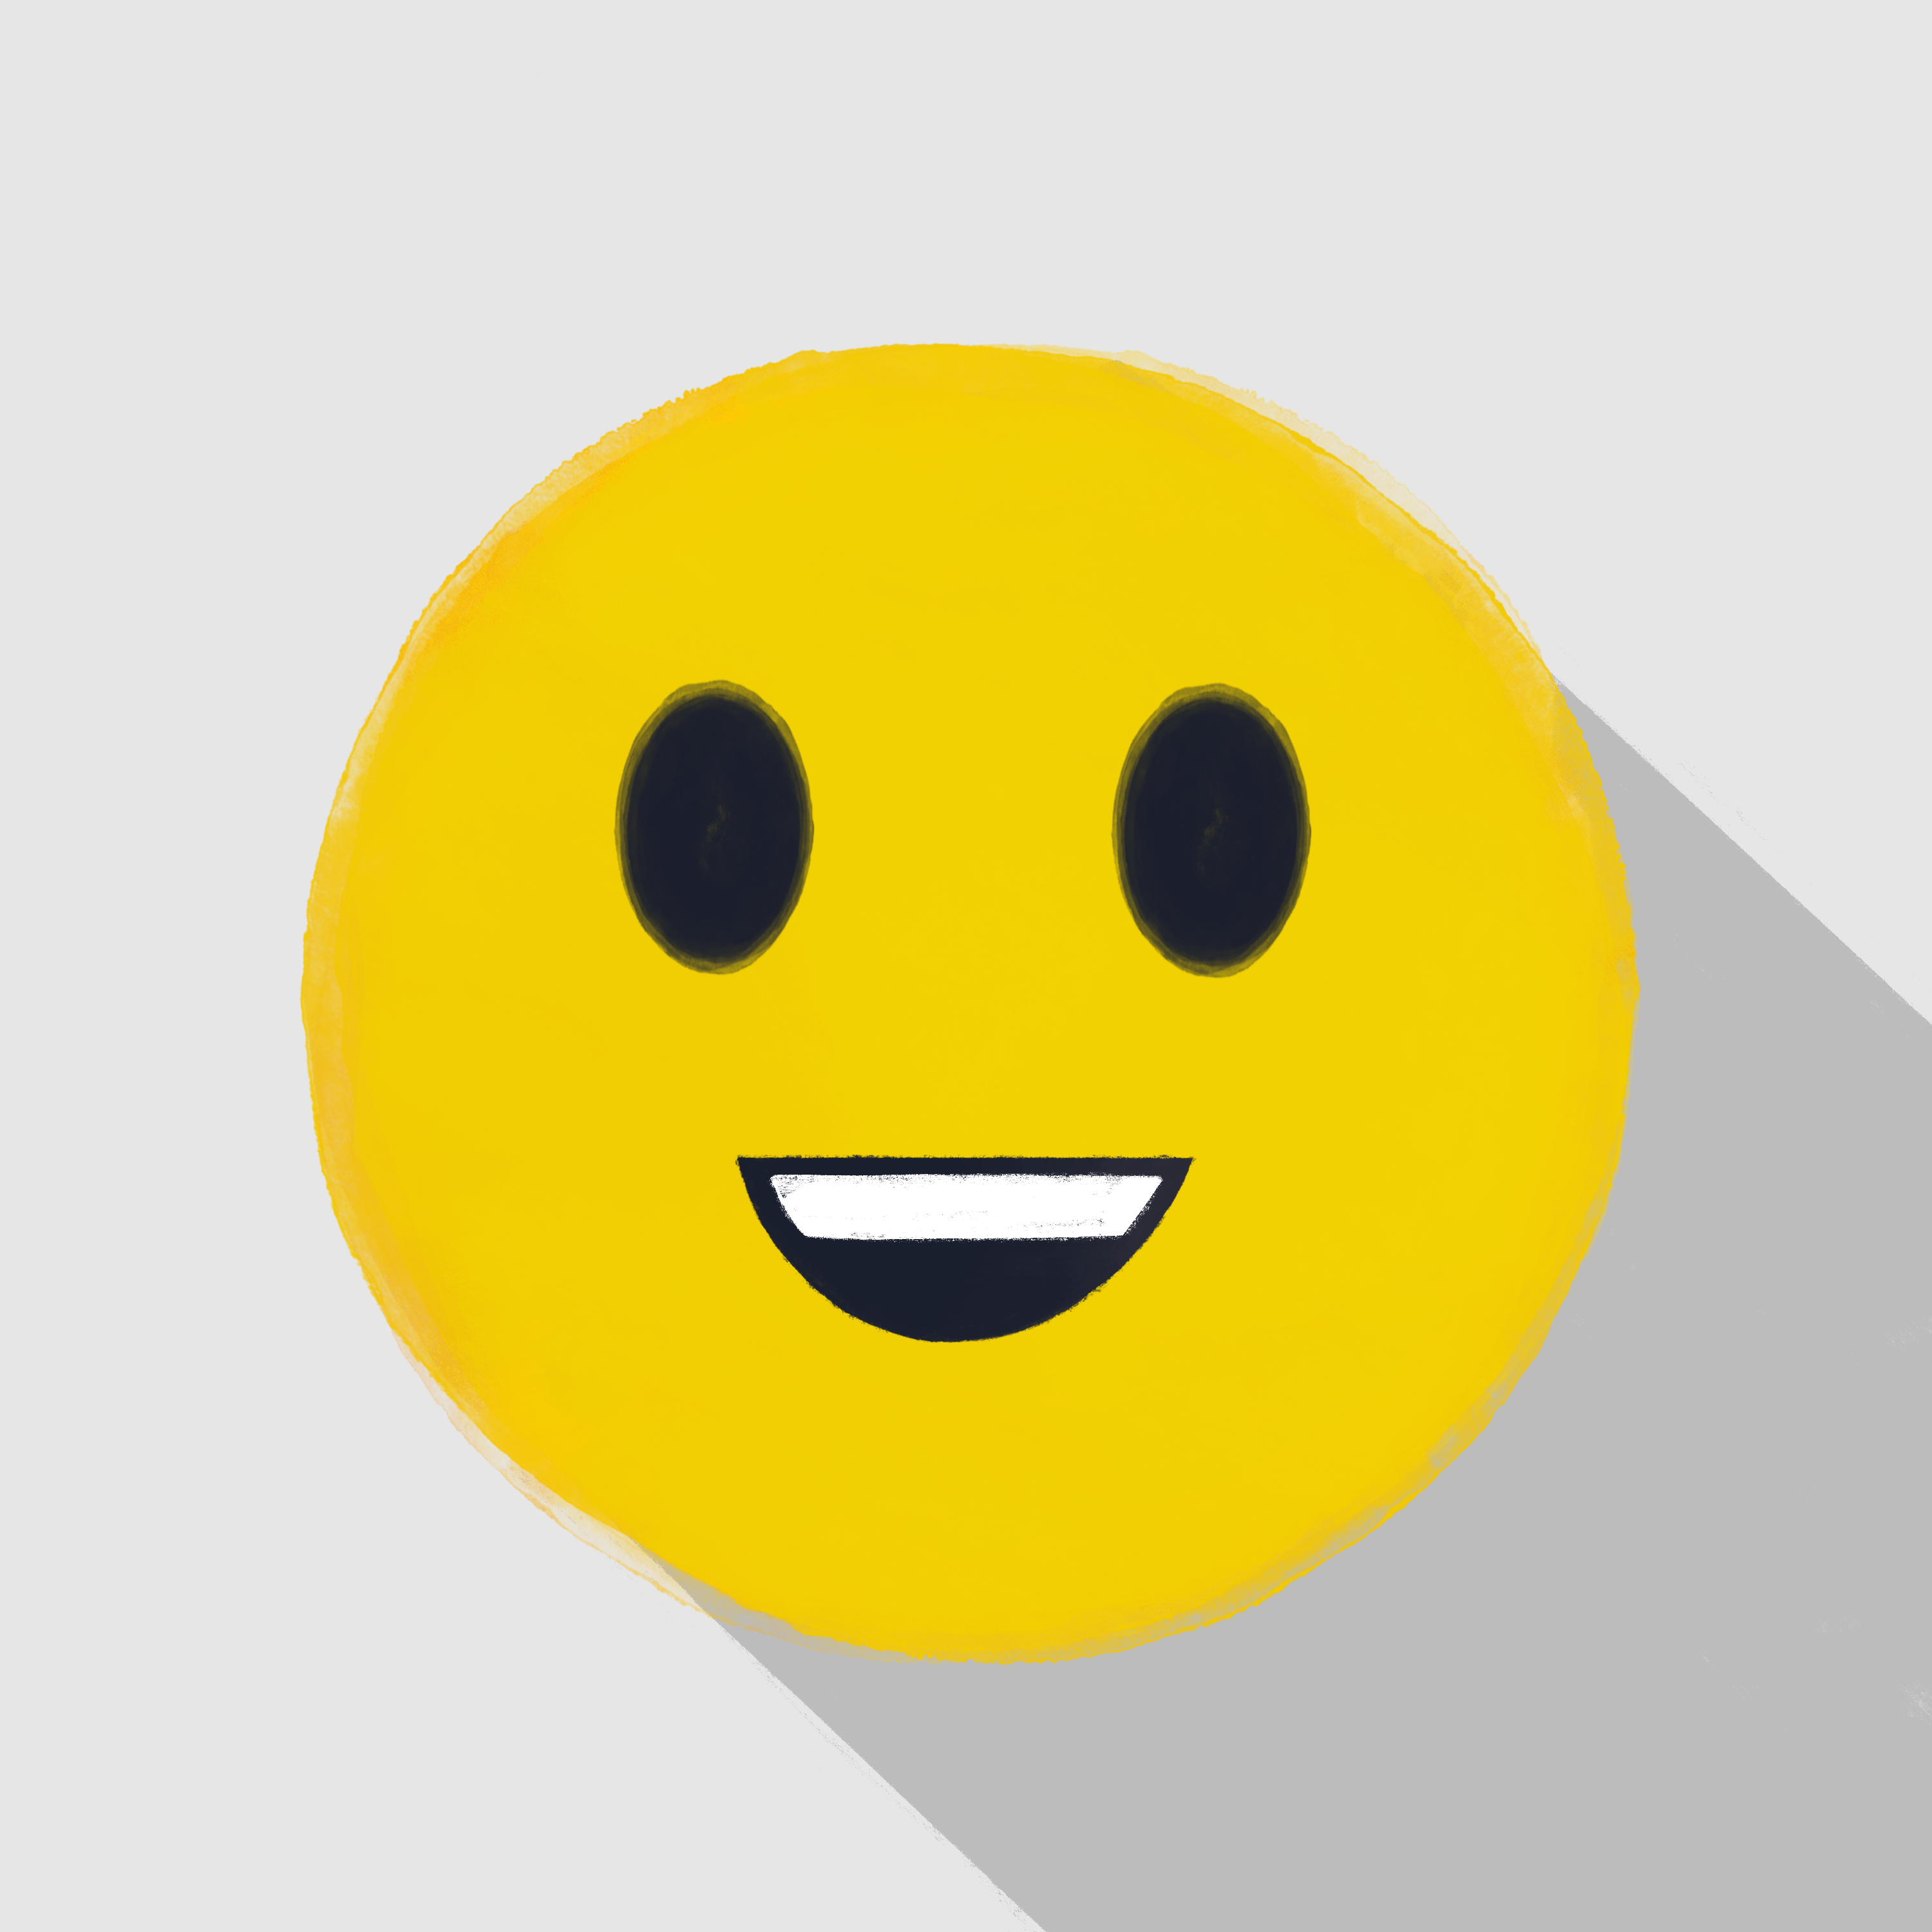 7-Emoji-Reimagined-Grinning_Face_With_Big_Eyes-Kiwani-Dolean